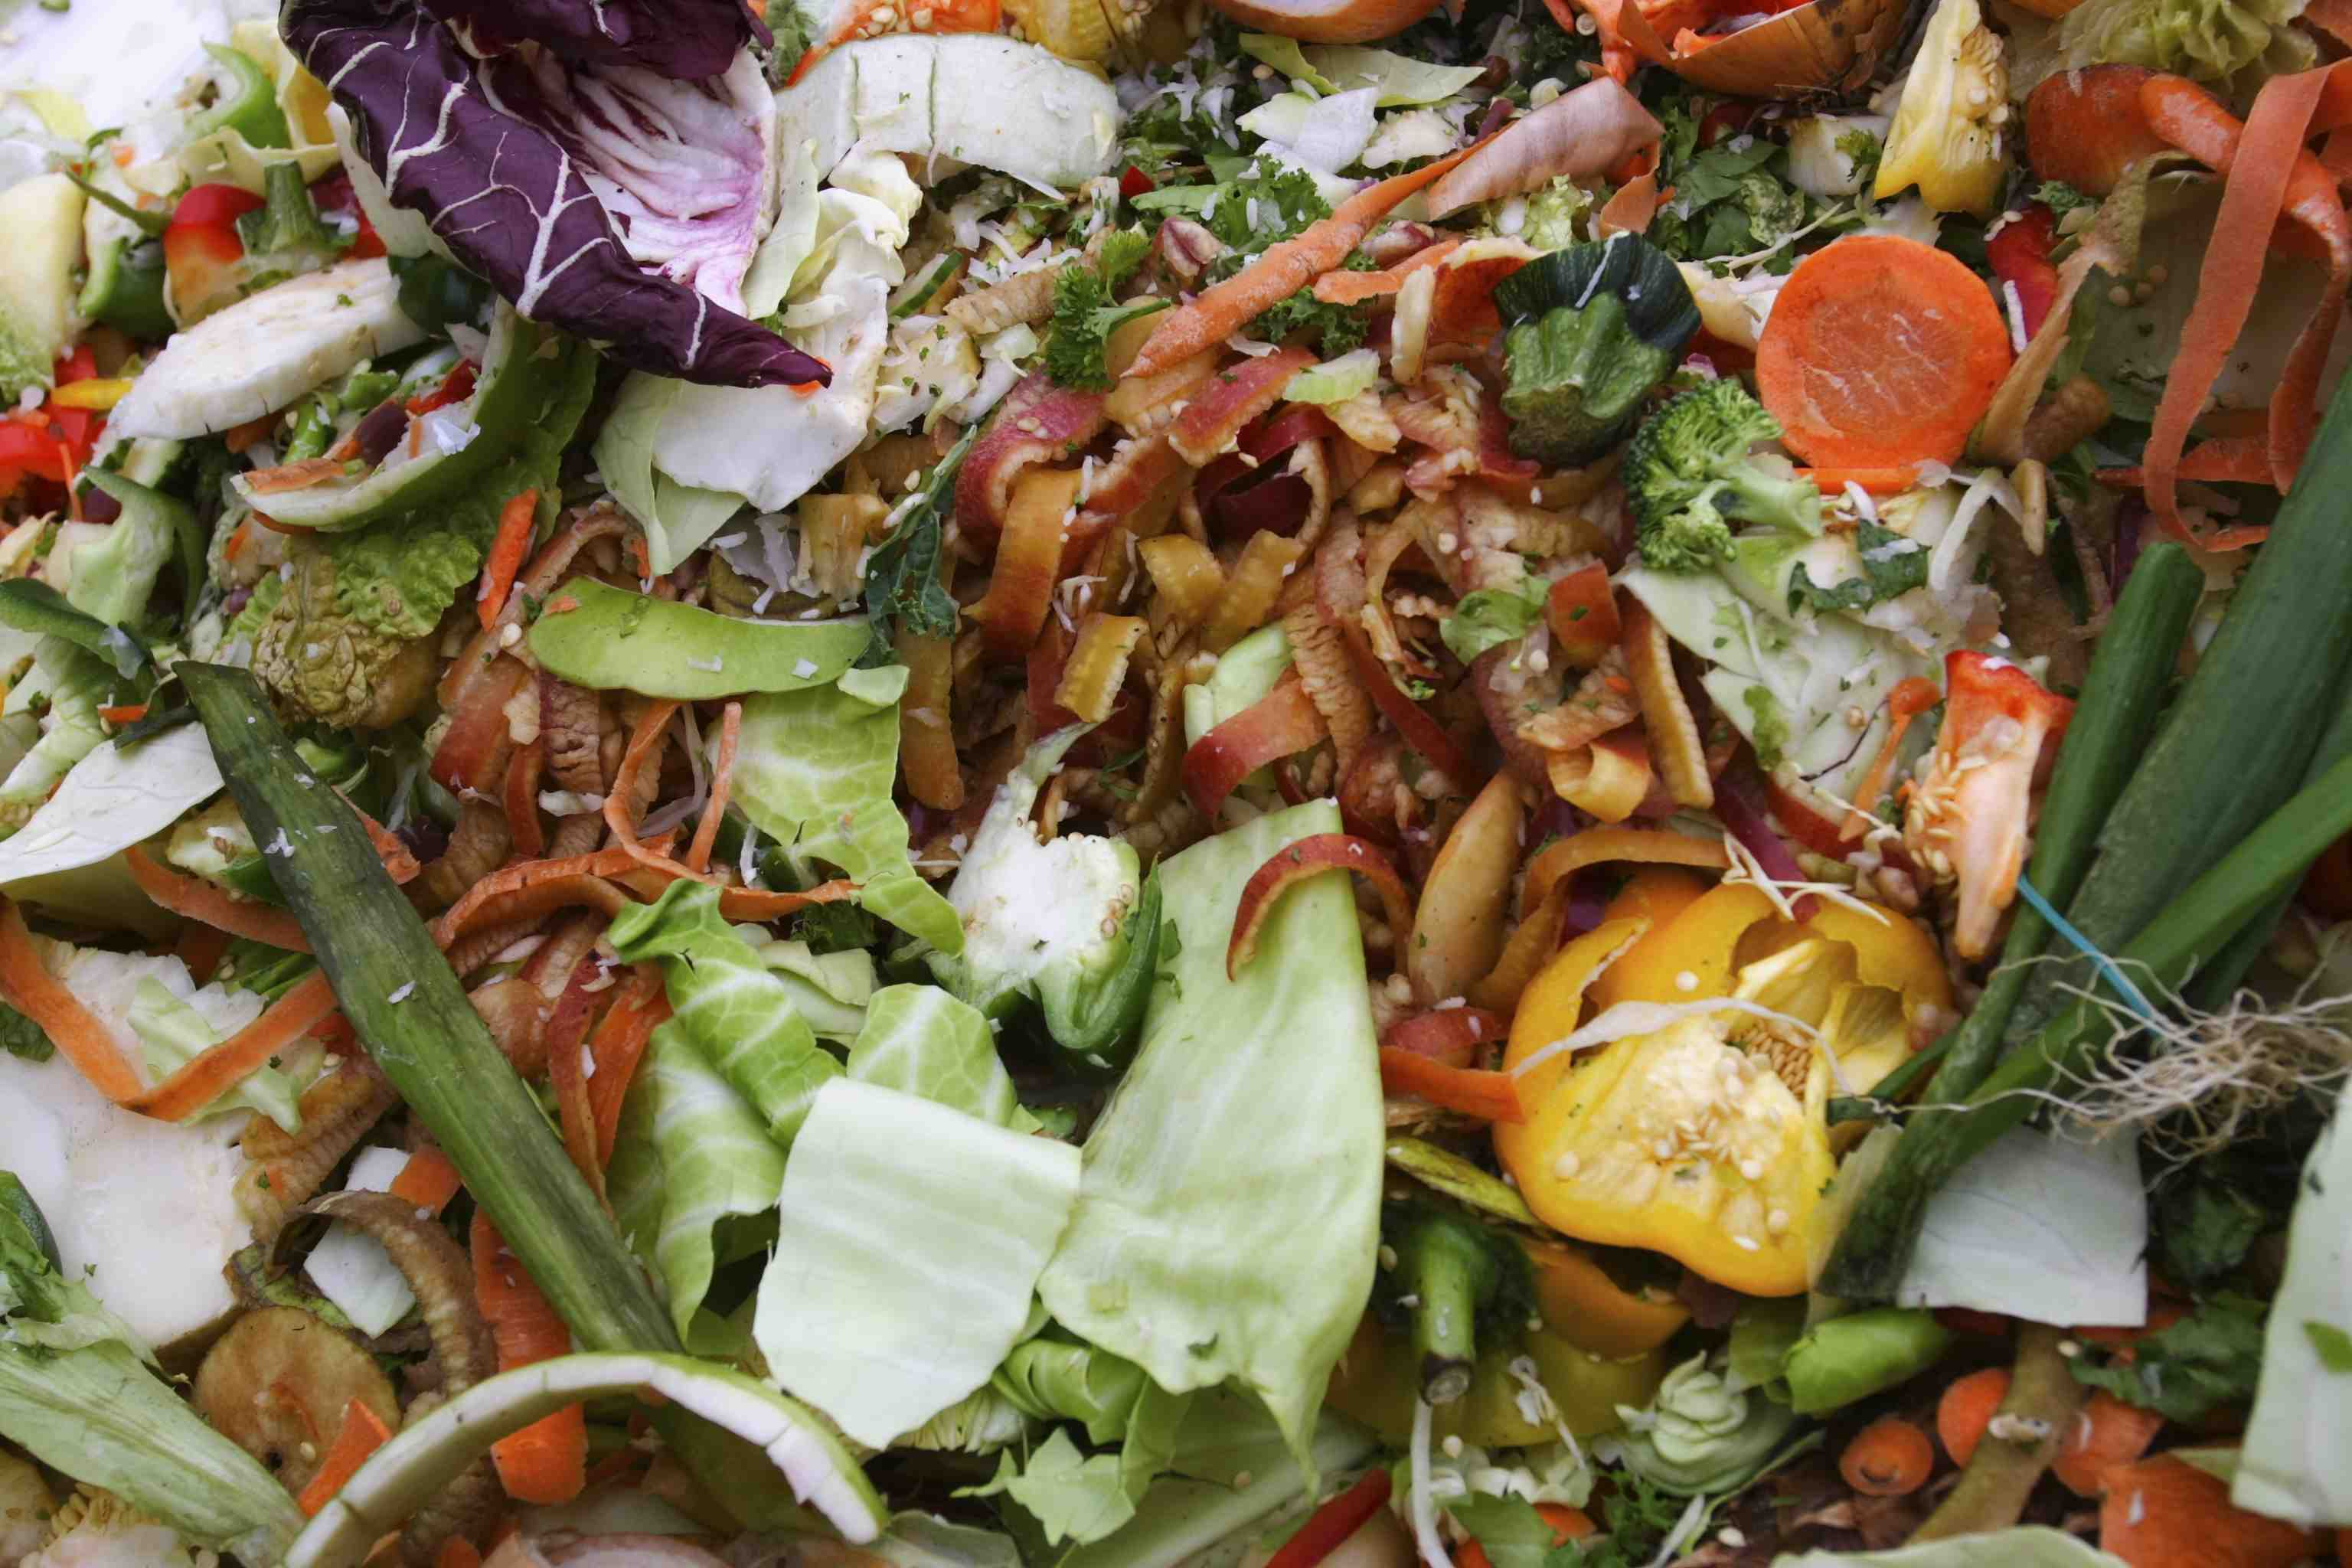 Stop Food Waste – Make the most of your food